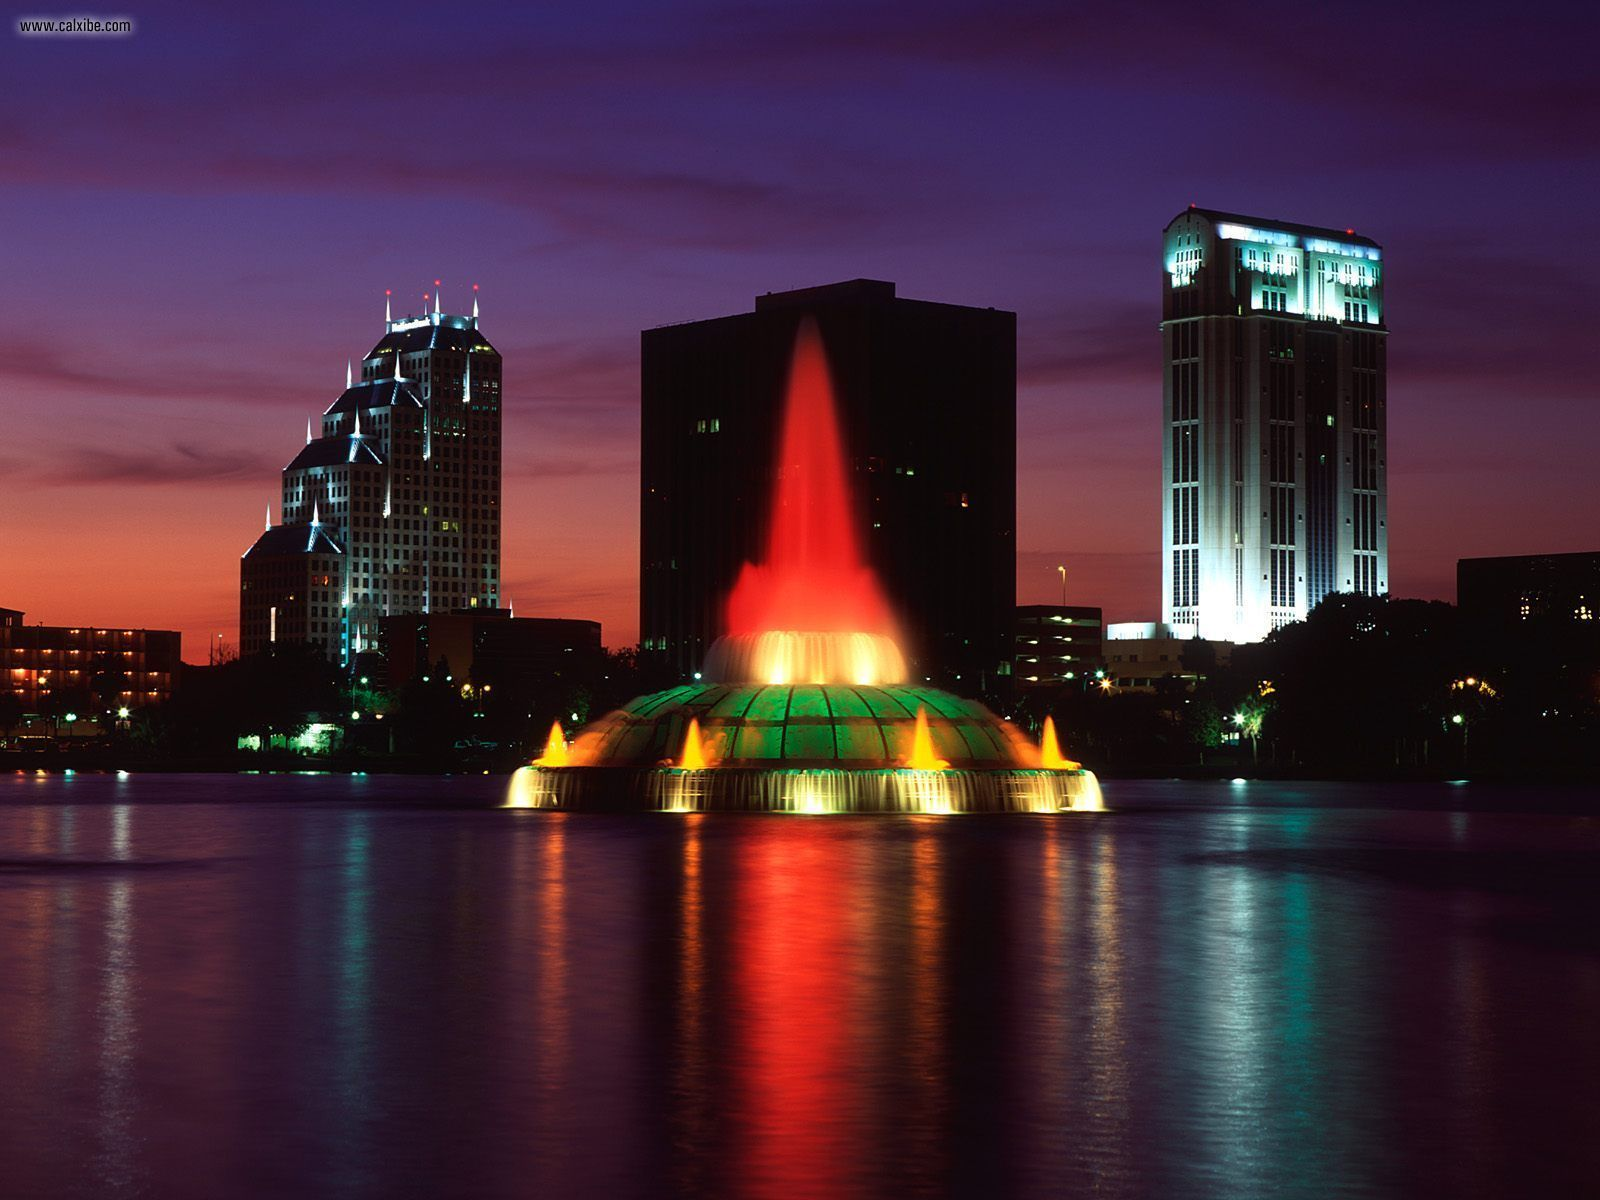 Lake Eola fountain show